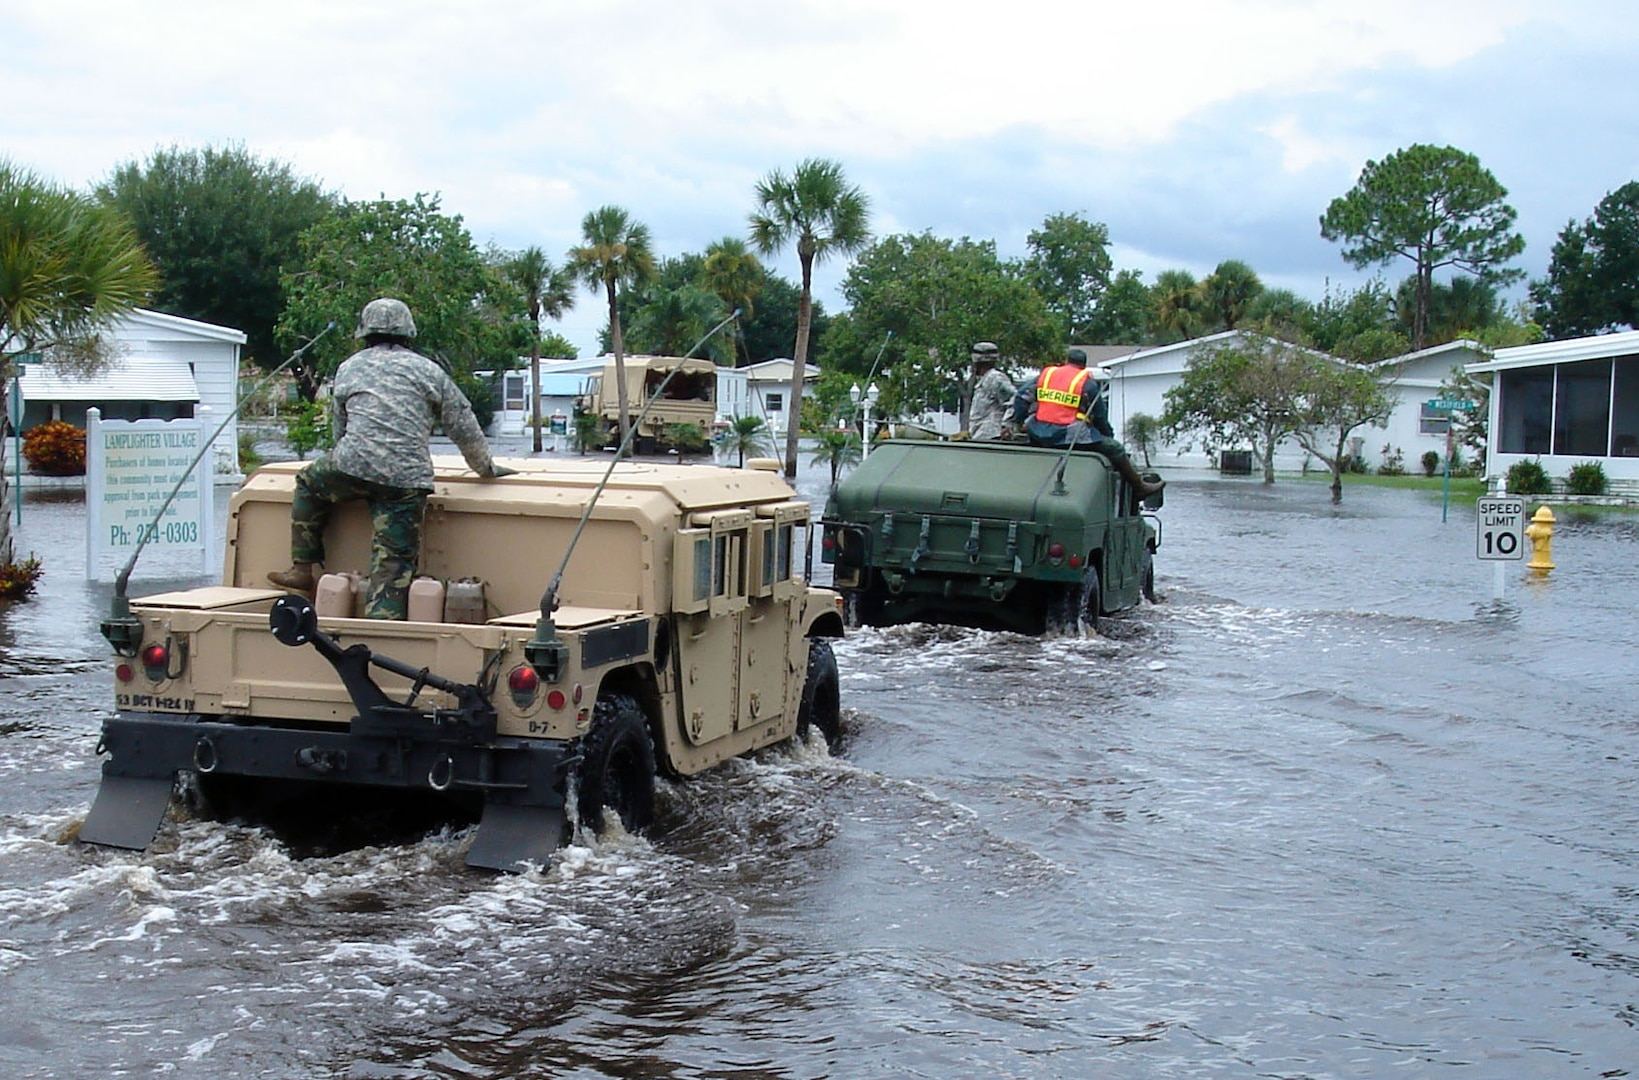 Members of the Florida National Guard's Delta Company, 1st Battalion, 124th Infantry Regiment, enter the Lamplighter Village mobile home park in Melbourne, Fla., to evacuate residents who request it, Aug. 21, 2008. Several residents were transported out of the park over the course of the day.